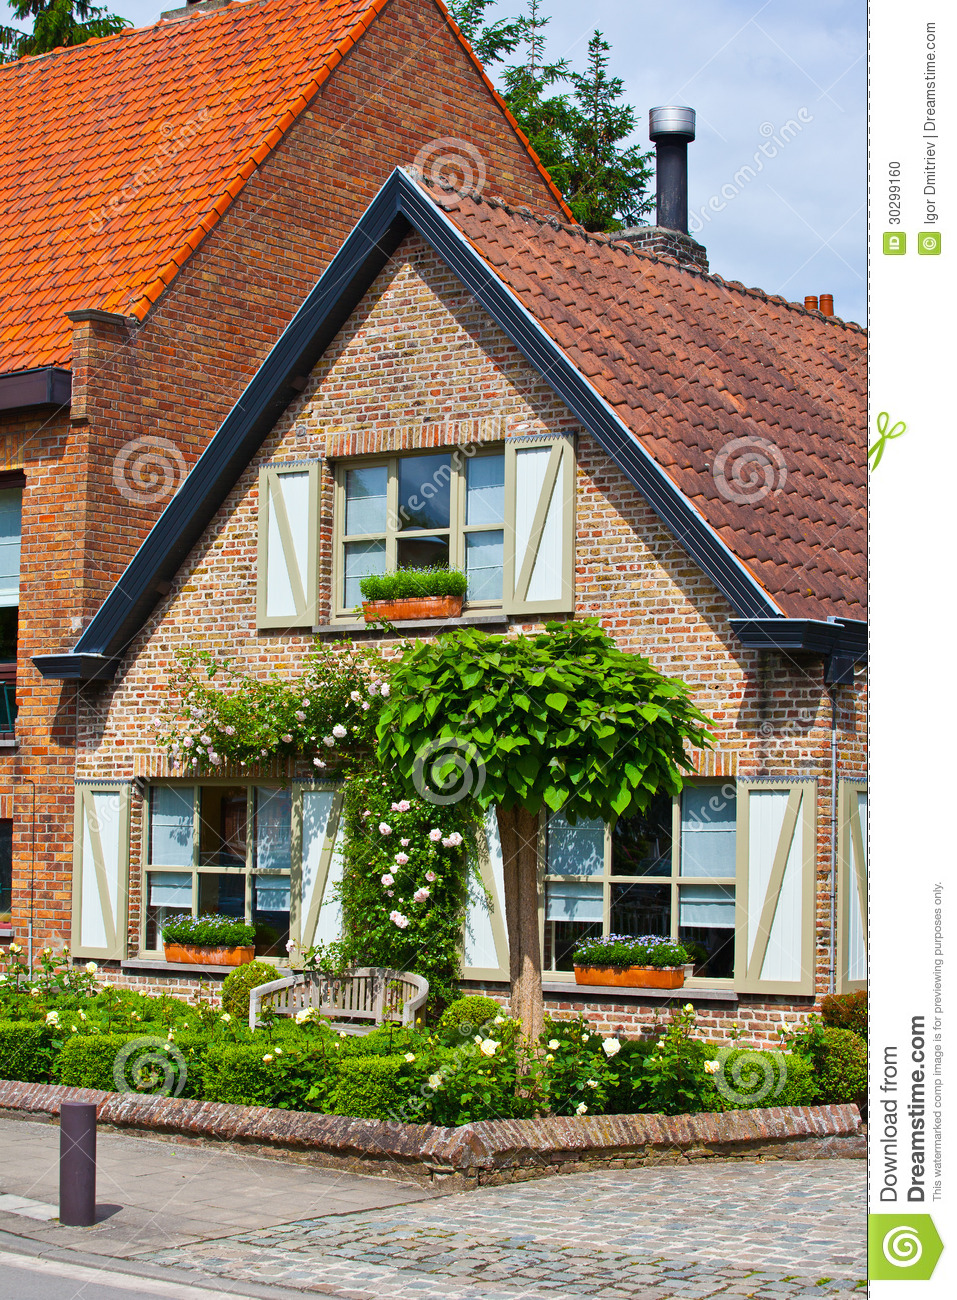 Belle maison de brique bruges la belgique photo stock for Image de belle maison